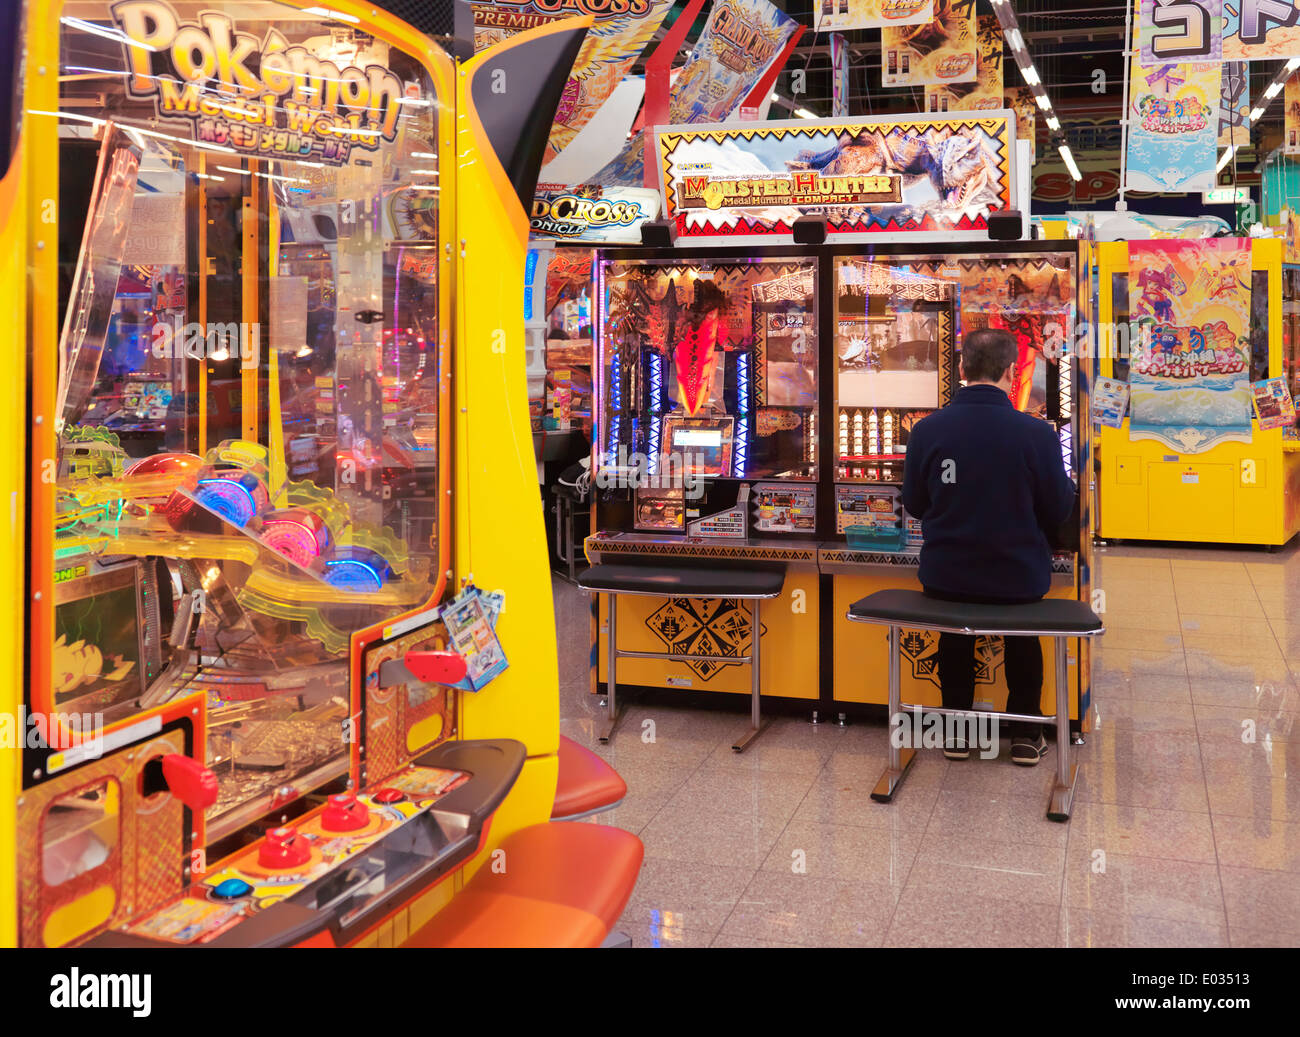 Person playing Monster Hunter arcade slot machine in Odaiba, Tokyo, Japan - Stock Image